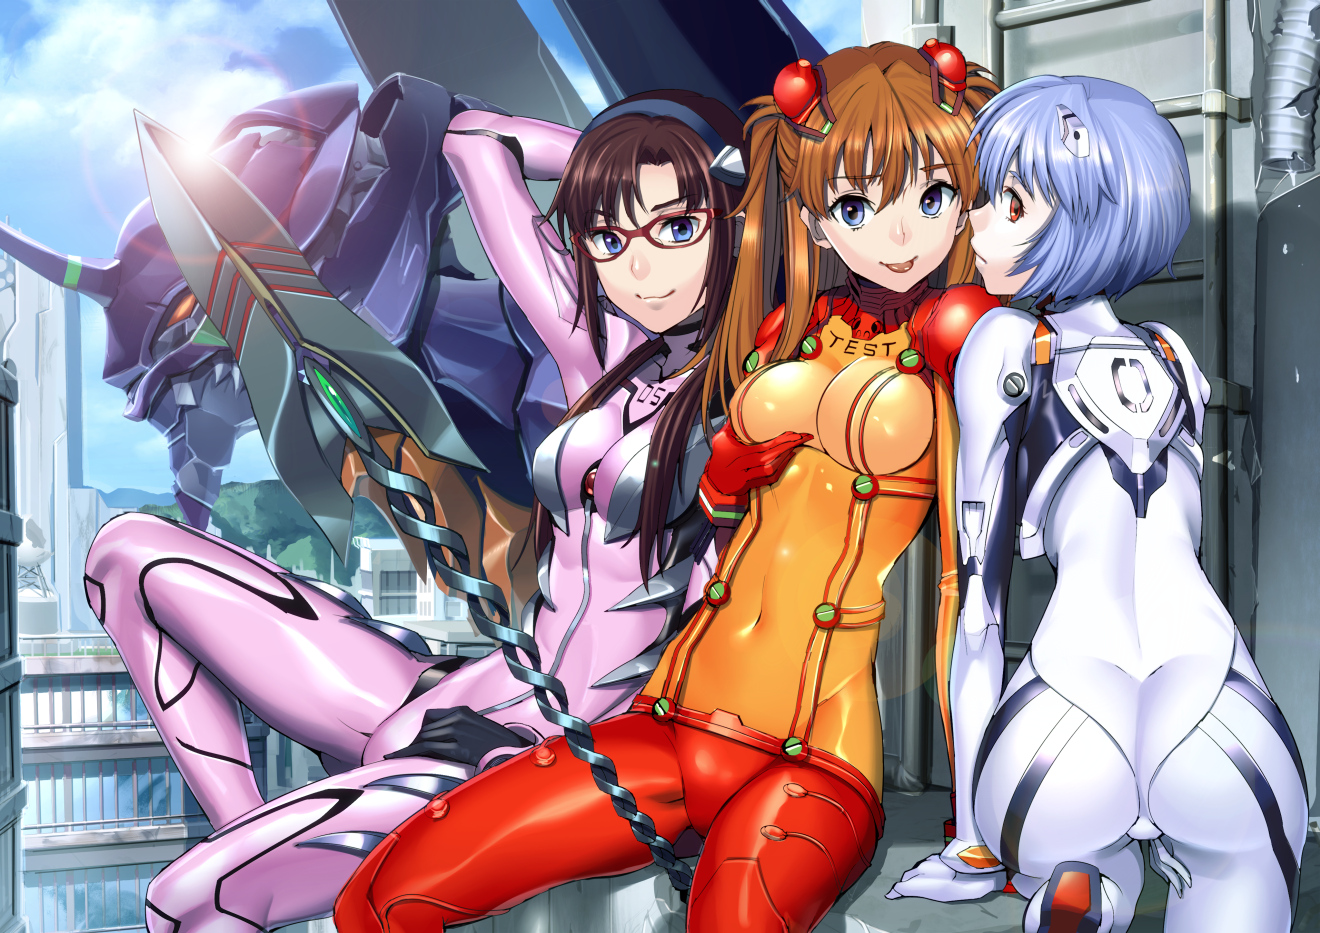 ass ayanami_rei bodysuit fukurou_tei makinami_mari_illustrious mecha neon_genesis_evangelion skintight soryu_asuka_langley weapon